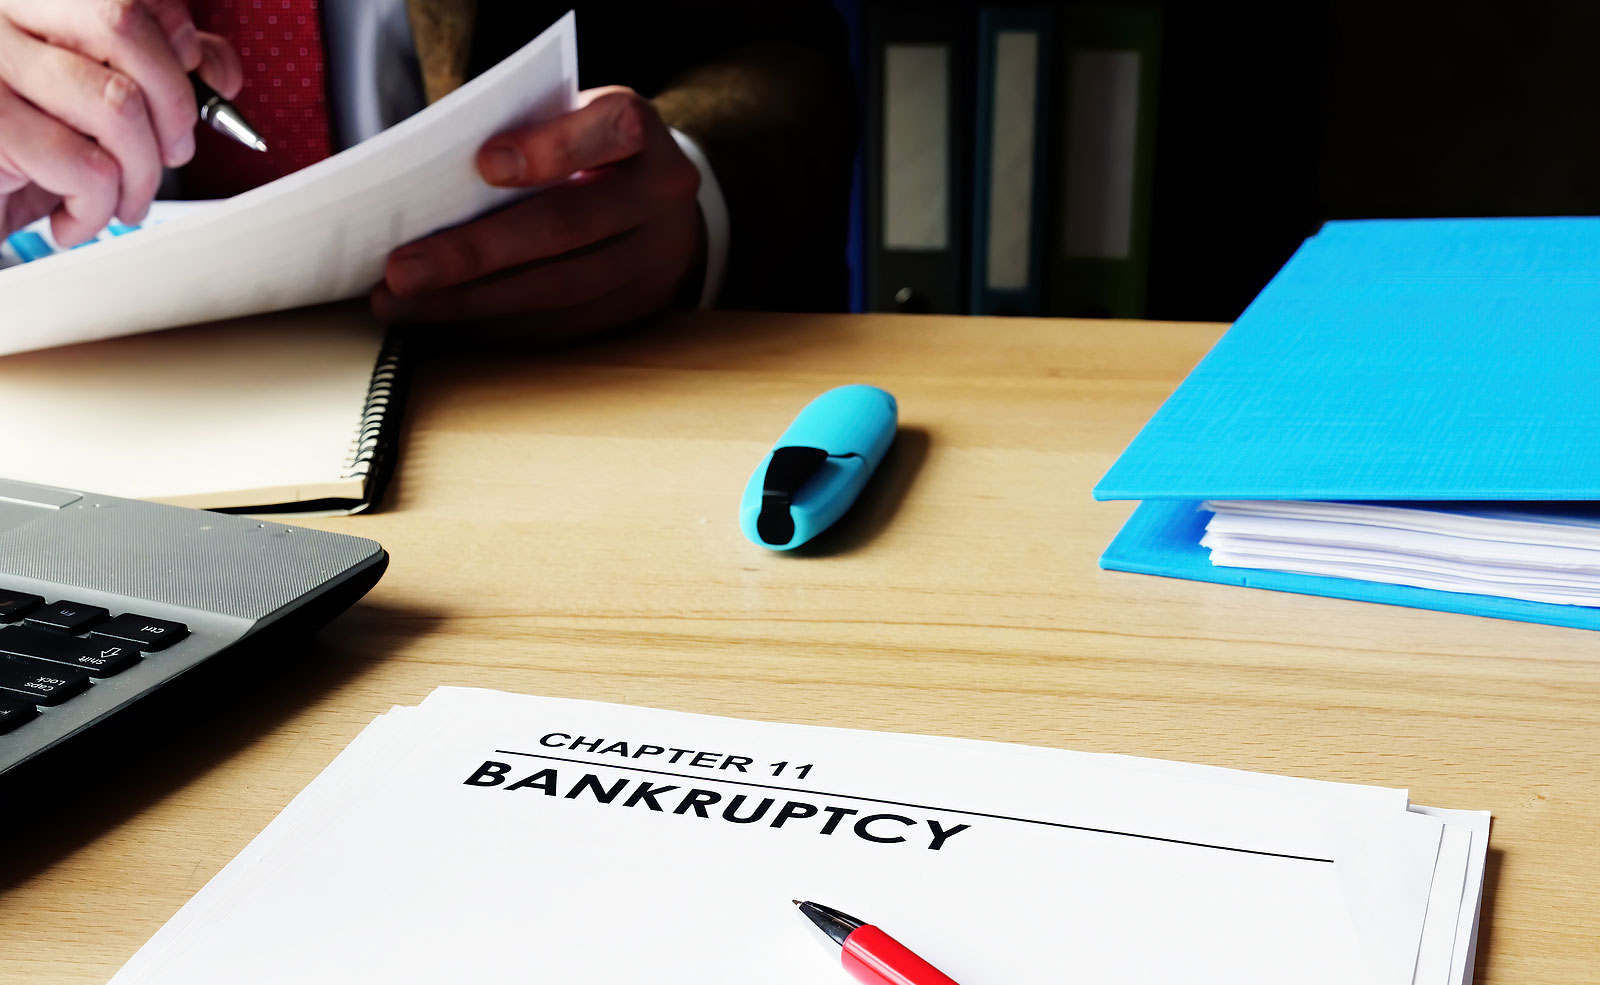 March Total Bankruptcy Filings Increase 39% from Previous Month